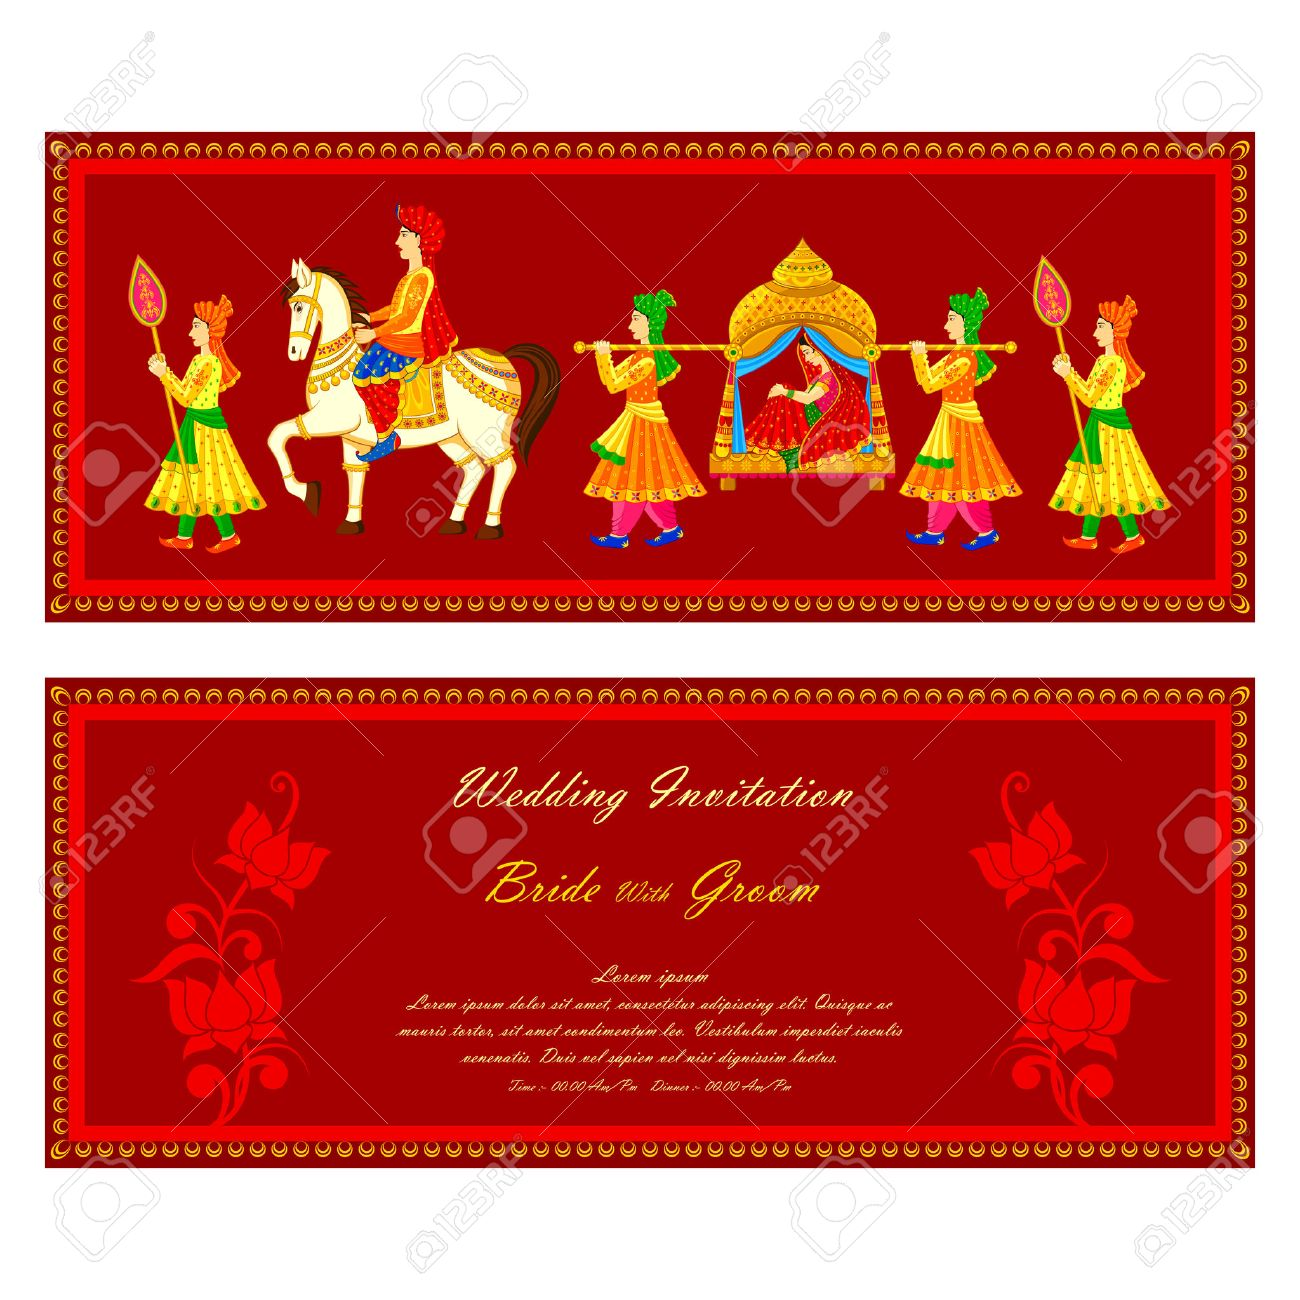 vector illustration of Indian wedding invitation card.